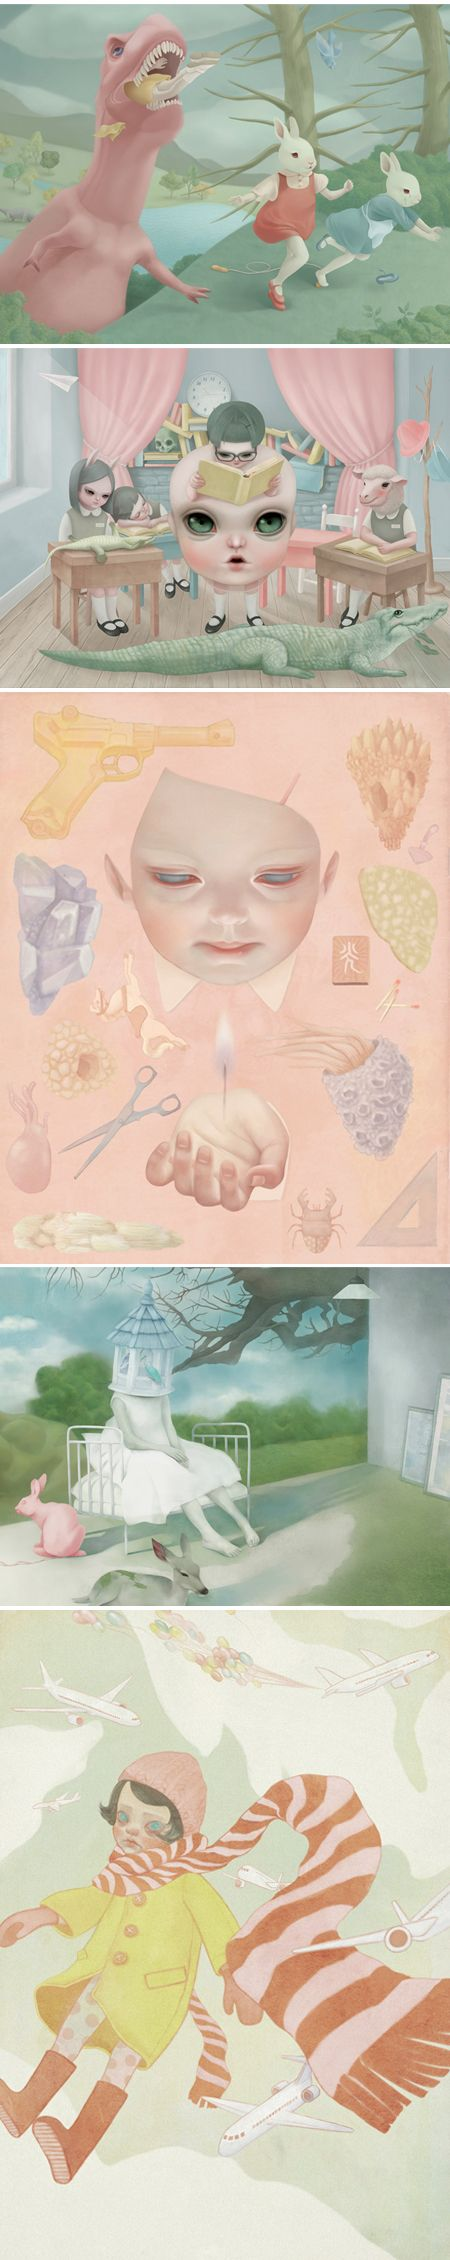 Hsiao-Ron Cheng. cute and creepy! what do you think, @Peter Thomas Thomas Riekert